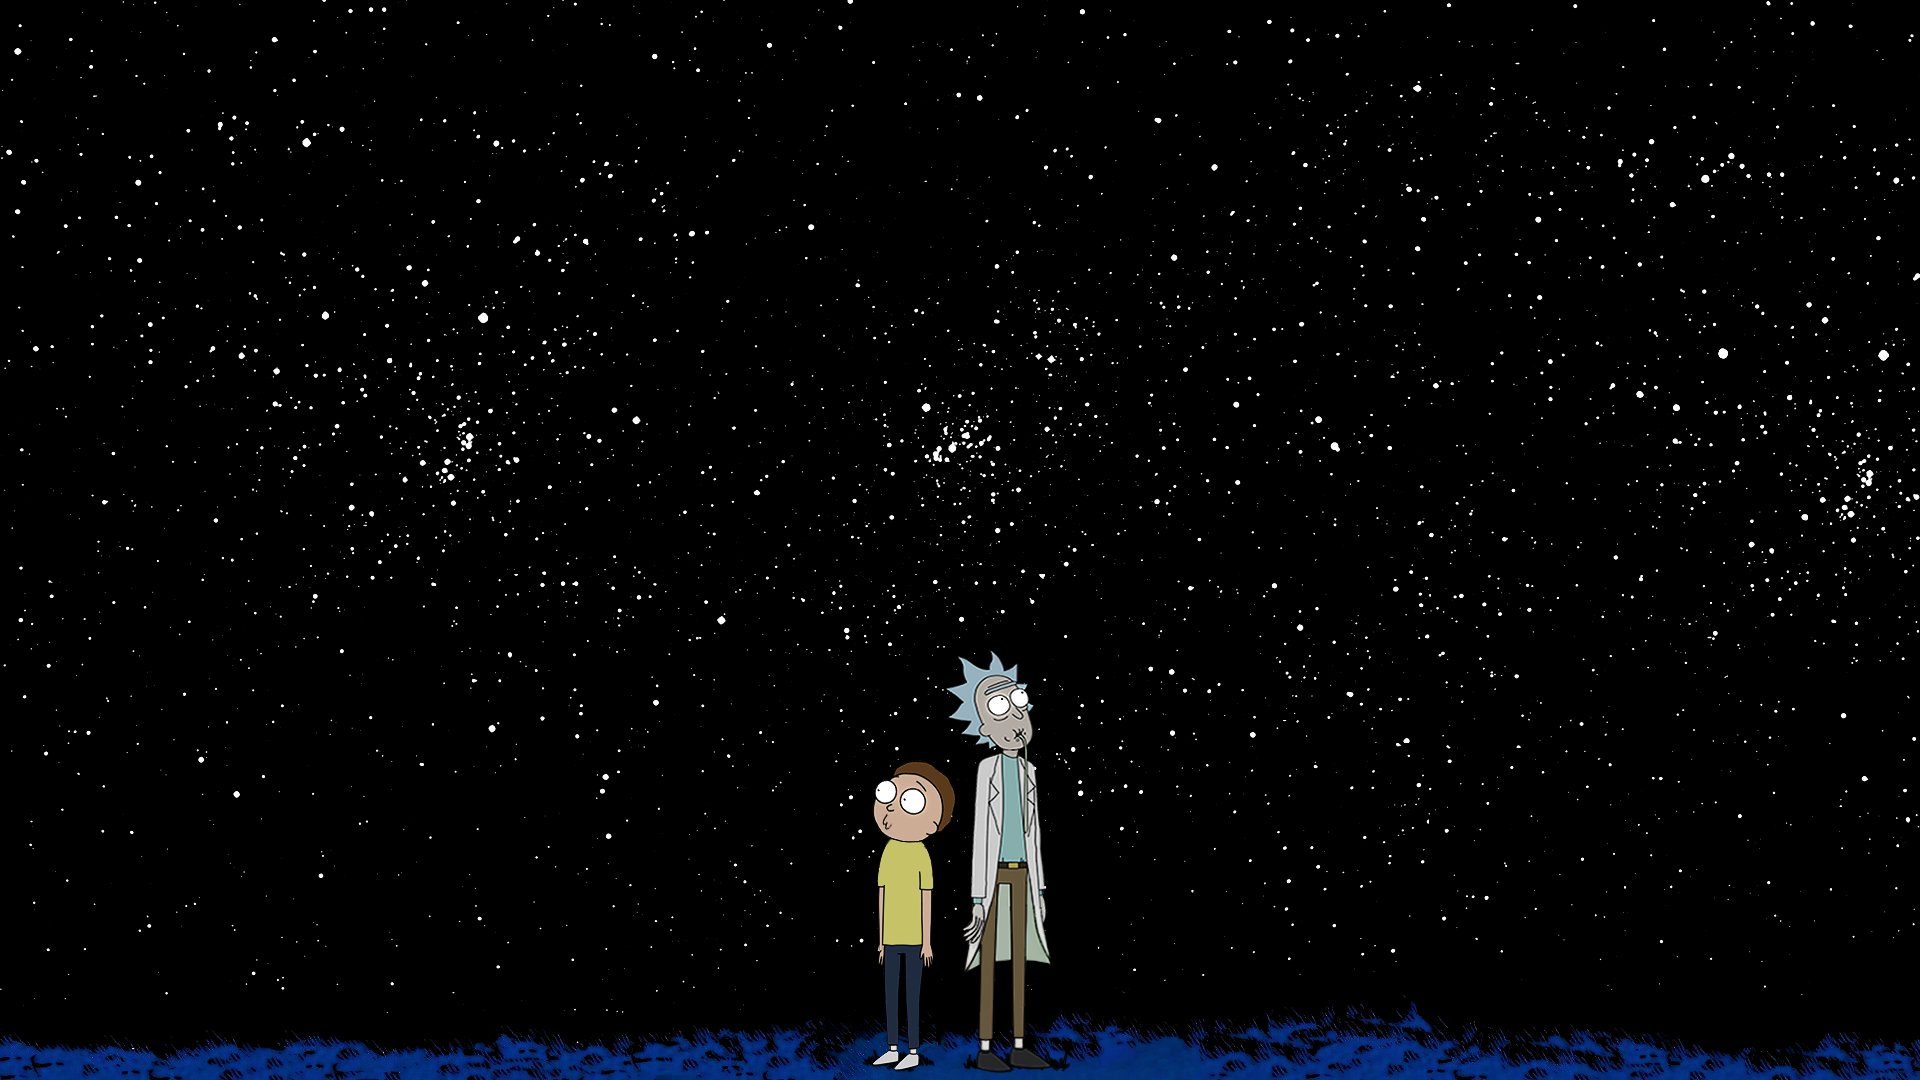 Rick And Morty X Calvin And Hobbes Imgur Background Images Wallpapers Cartoon Wallpaper Rick And Morty